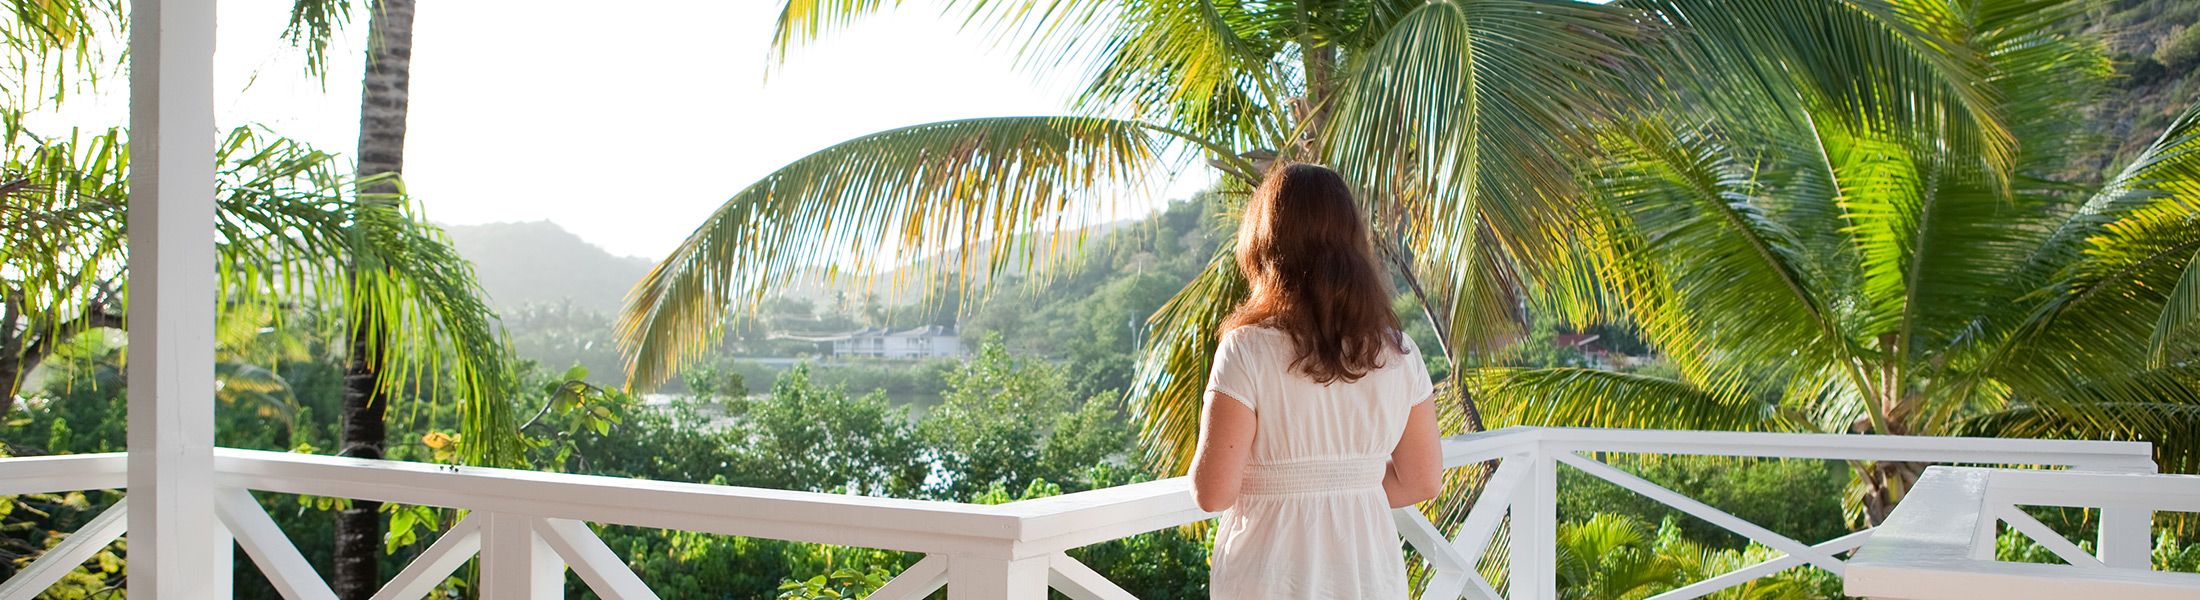 Woman on a balcony overlooking tropical gardens in Antigua